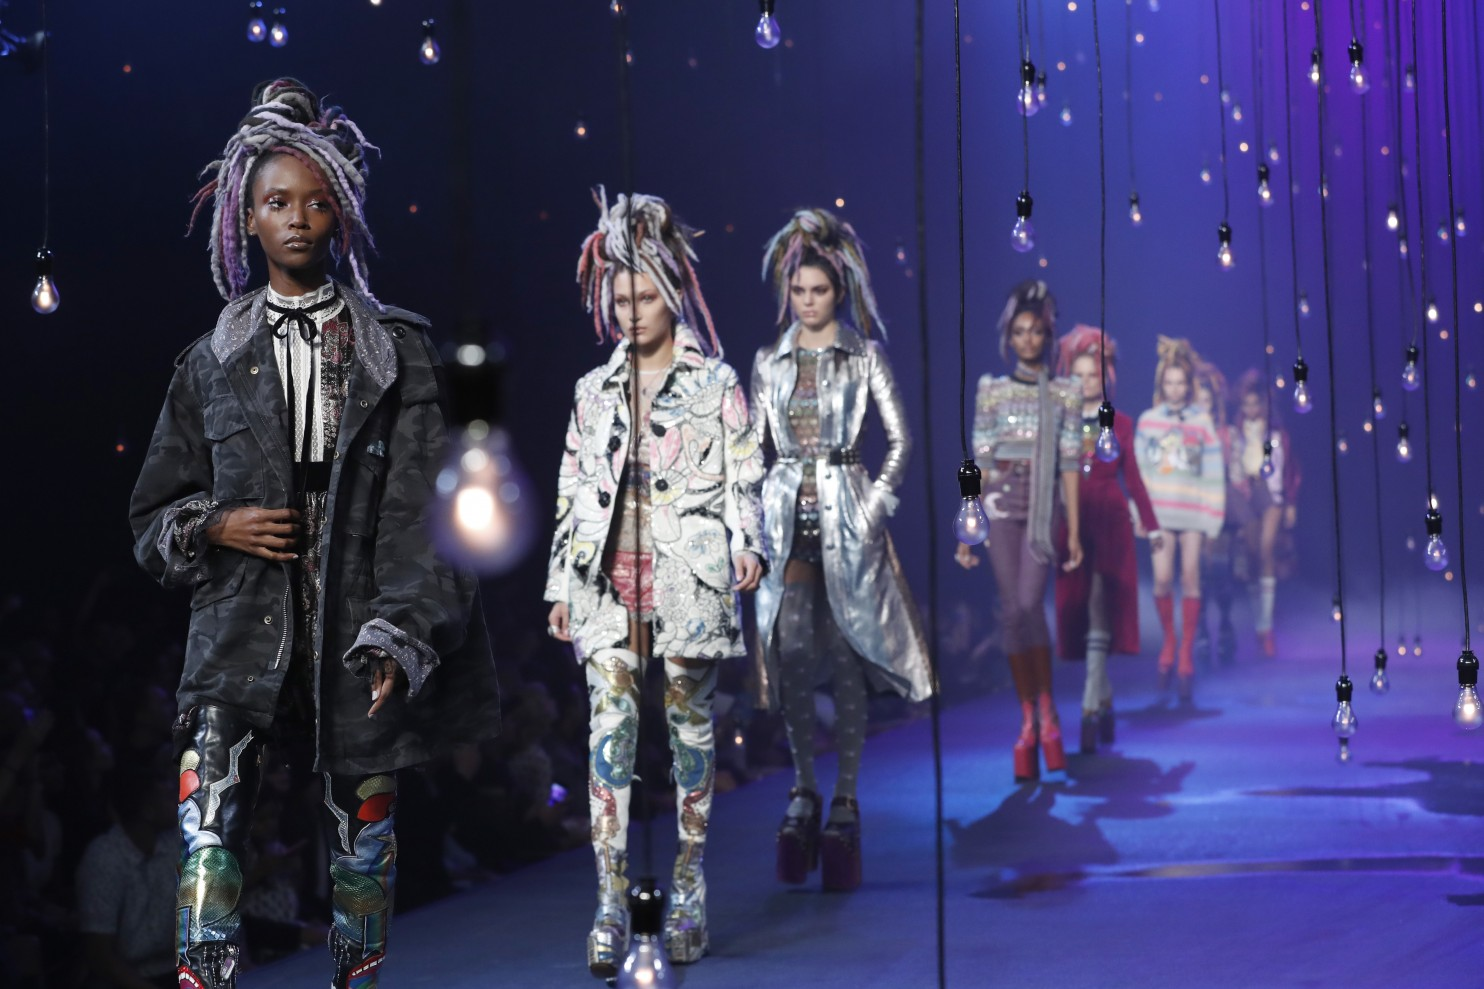 "FILE - In this Sept. 15, 2016, file photo, the Marc Jacobs Spring 2017 collection is modeled during Fashion Week in New York. Jacobs was criticized for showcasing white models in dreadlocks during the show. A screengrab showed Jacobs later responding on Instagram that he doesn't see color or race. In a separate post on Sunday, Sept. 18, 2016, Jacobs said he was sorry for ""the lack of sensitivity"" in responding to critics. (Mary Altaffer, File/Associated Press)."